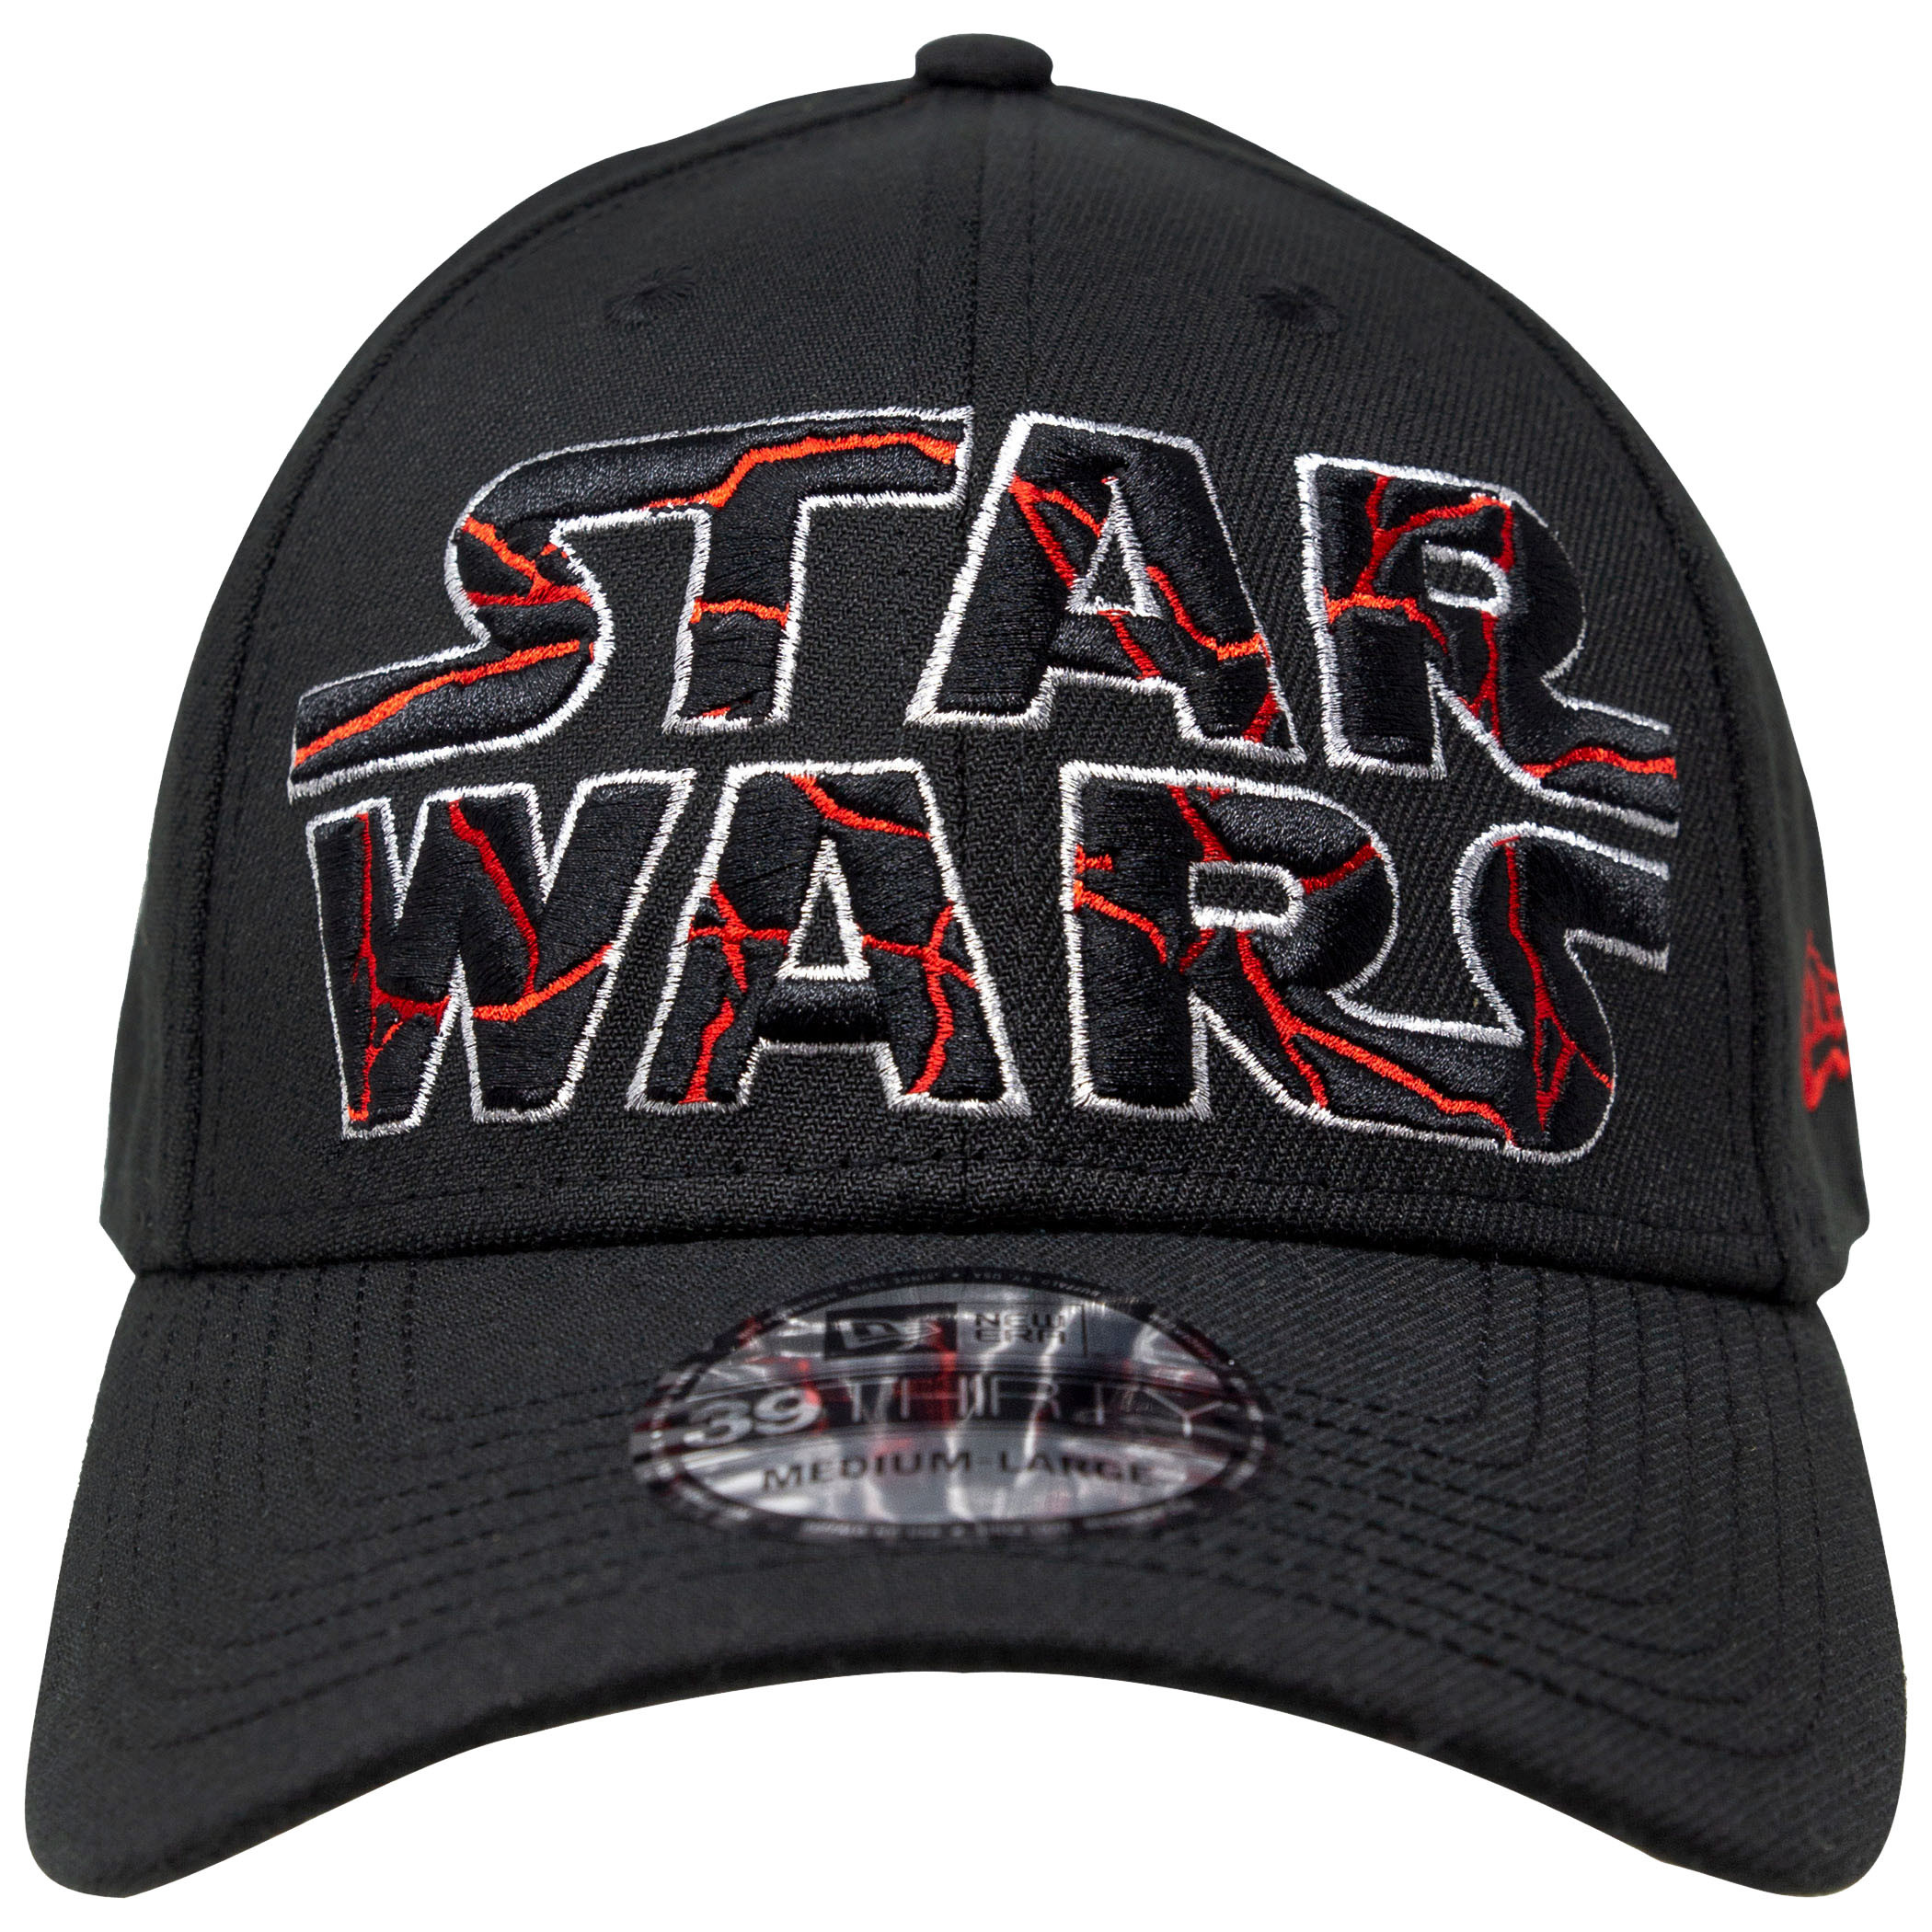 Star Wars The Rise of Skywalker Cracked Text Logo New Era 39Thirty Flex Fitted Hat